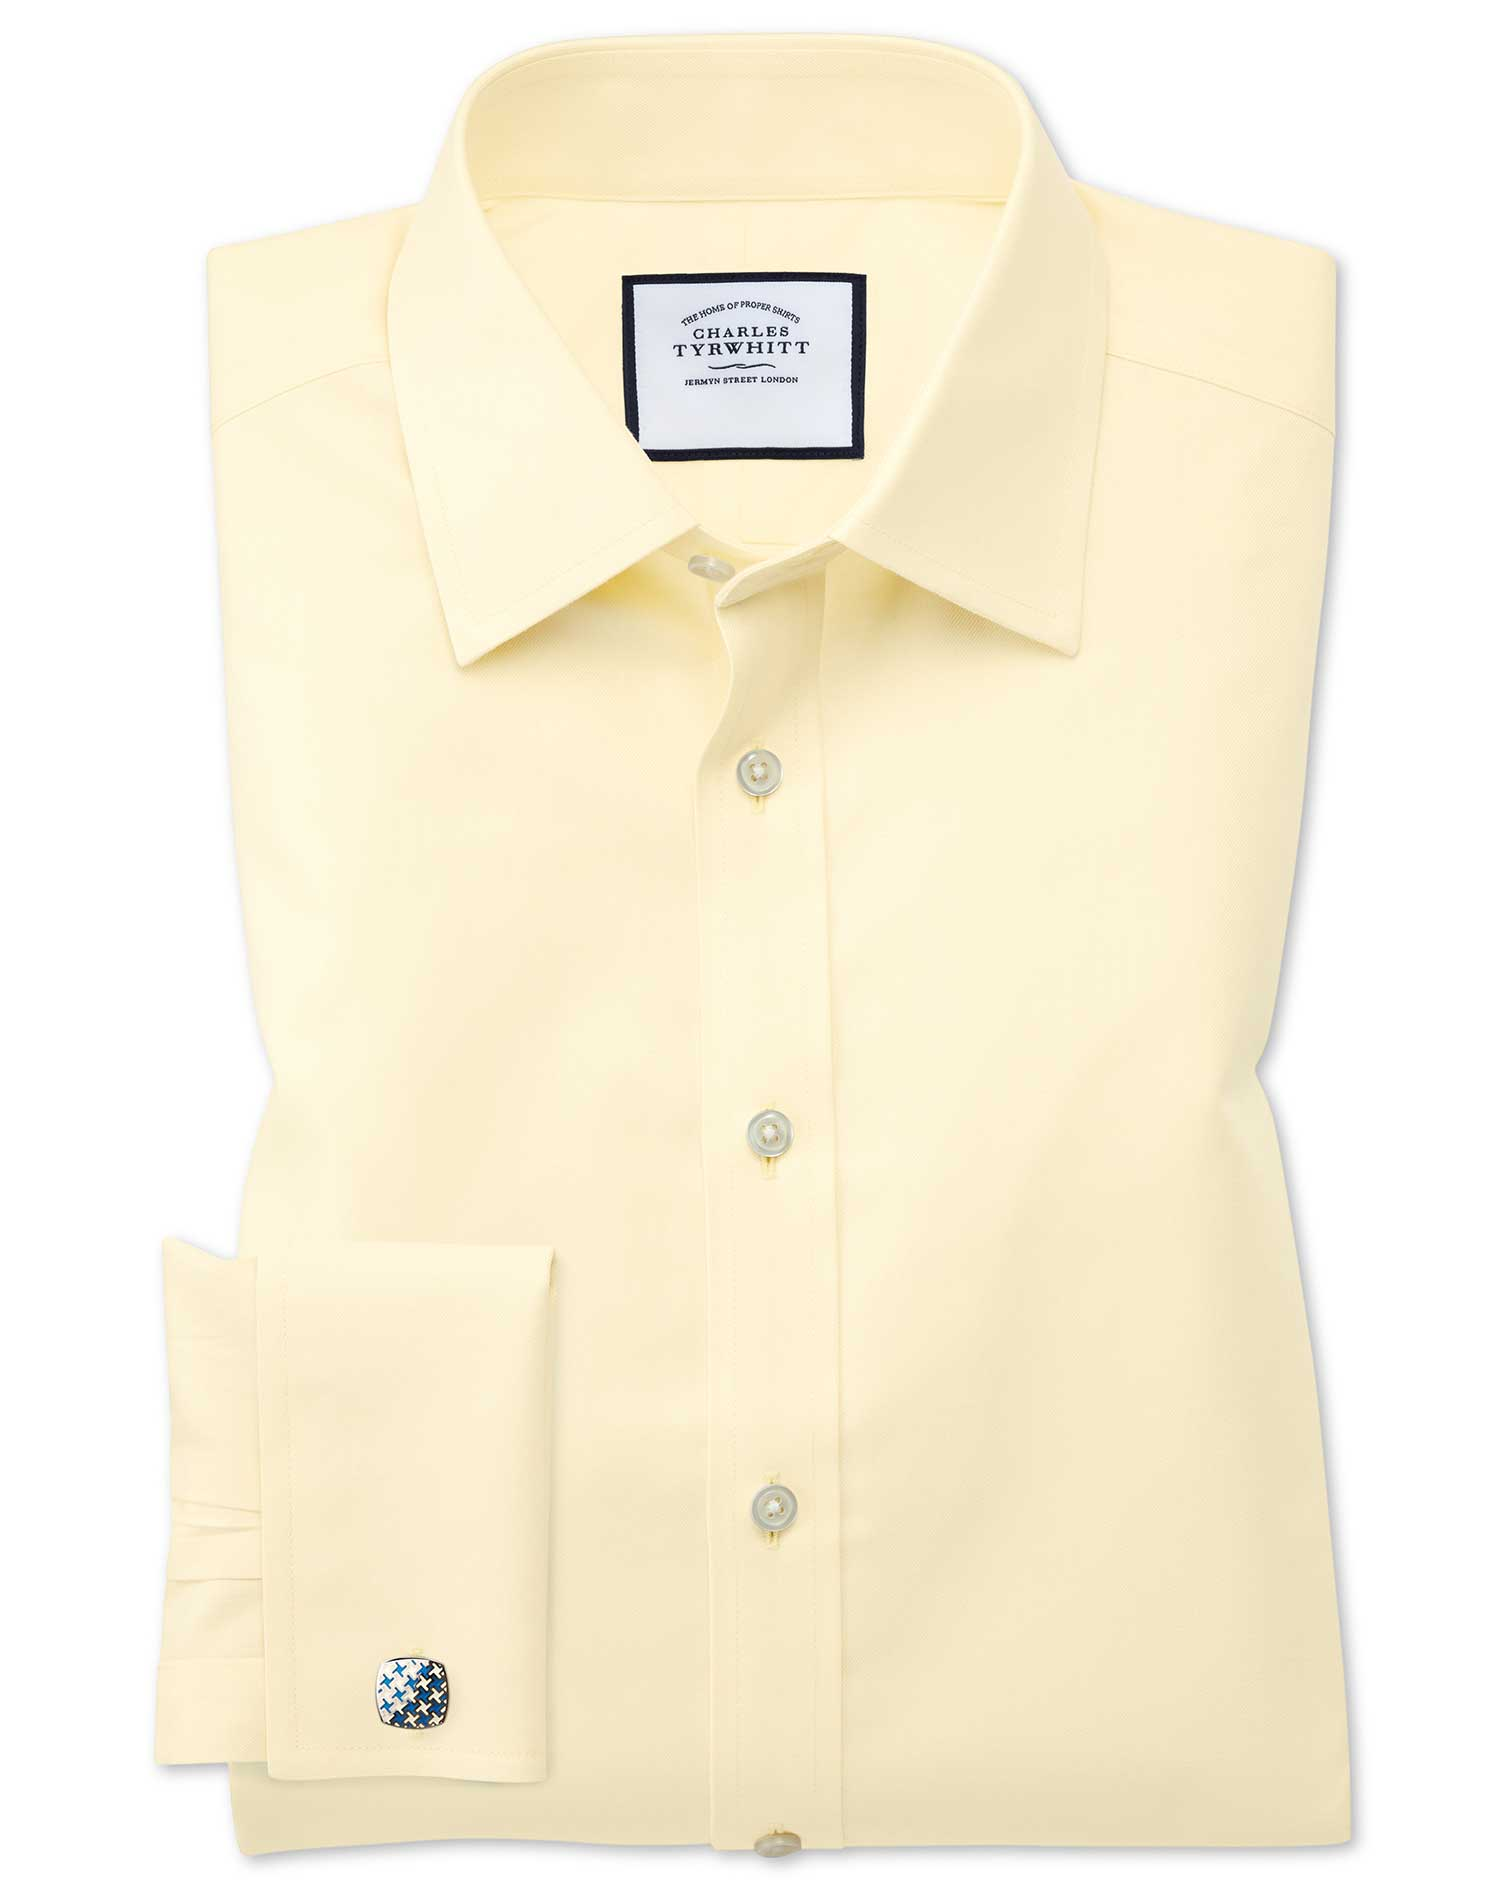 Classic Fit Non-Iron Twill Yellow Cotton Formal Shirt Double Cuff Size 16.5/34 by Charles Tyrwhitt